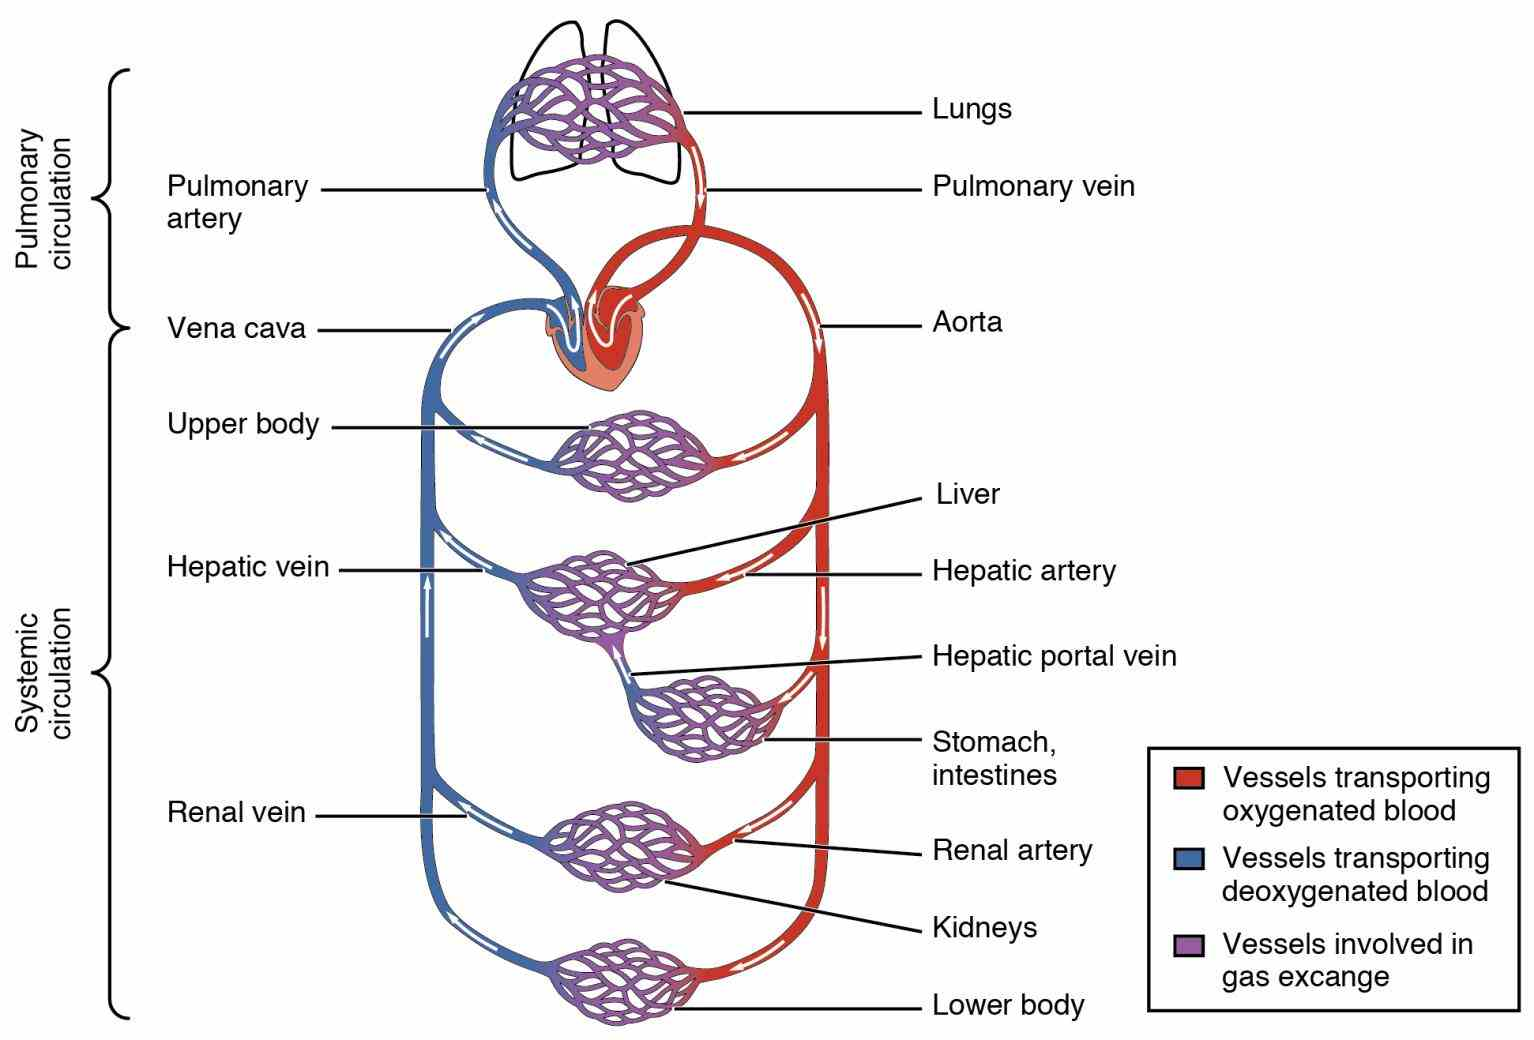 passes major arteries and gets  this Heart Diagram With Labels And Blood Flow diagram shows how blood flows through